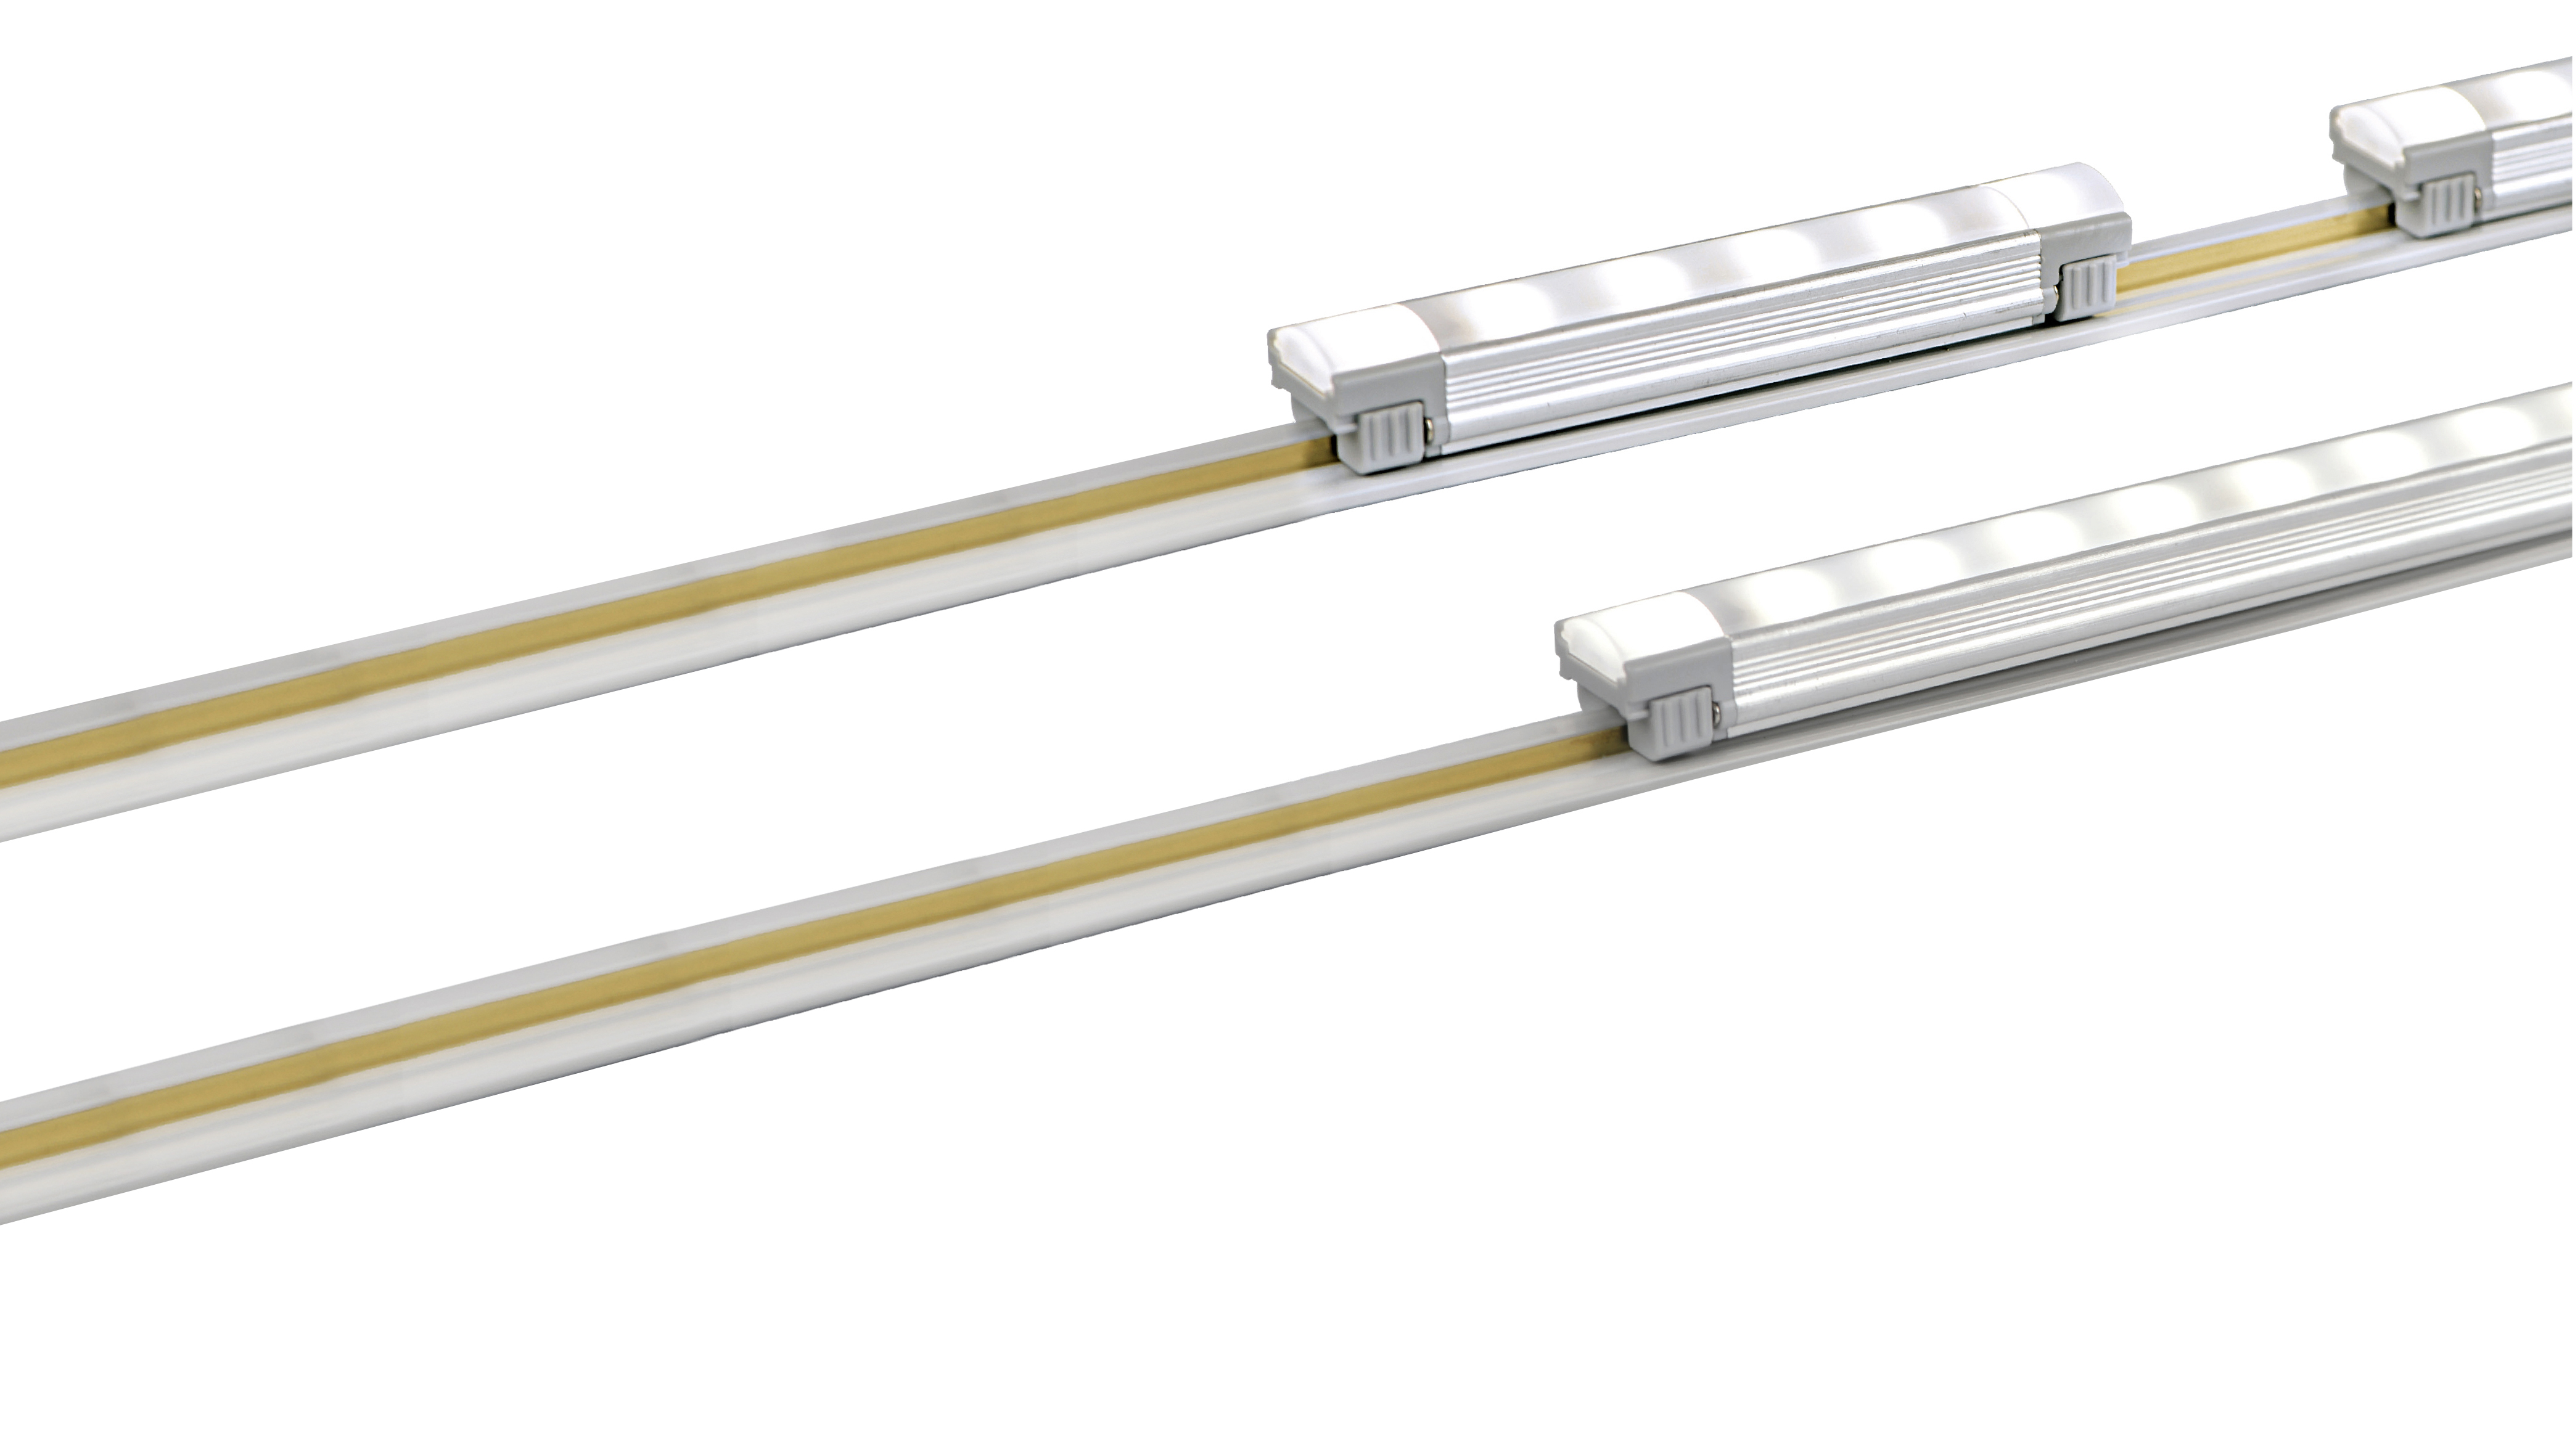 Charmant Feelux MonoRail. A Simply Linear Track Creates Totally Modular Display,  Under Cabinet And Even Cove Lighting